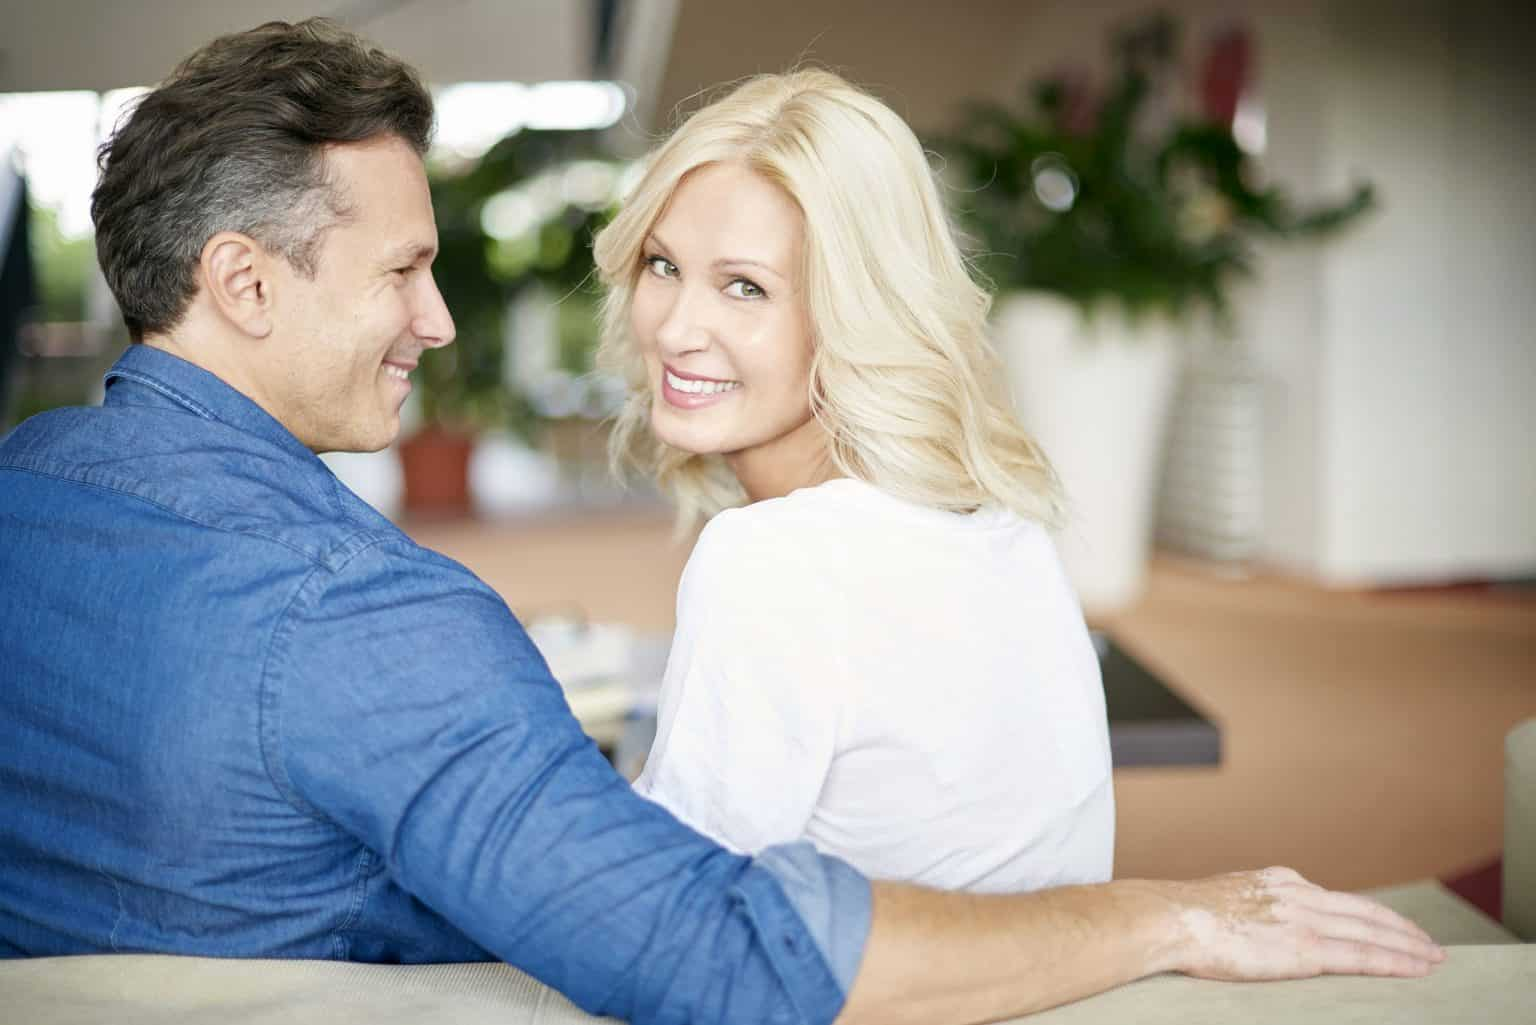 informal relationships can lead to legal troubles - it is important for de facto couples to understand their rights to a property settlement in the event the relationship breaks down